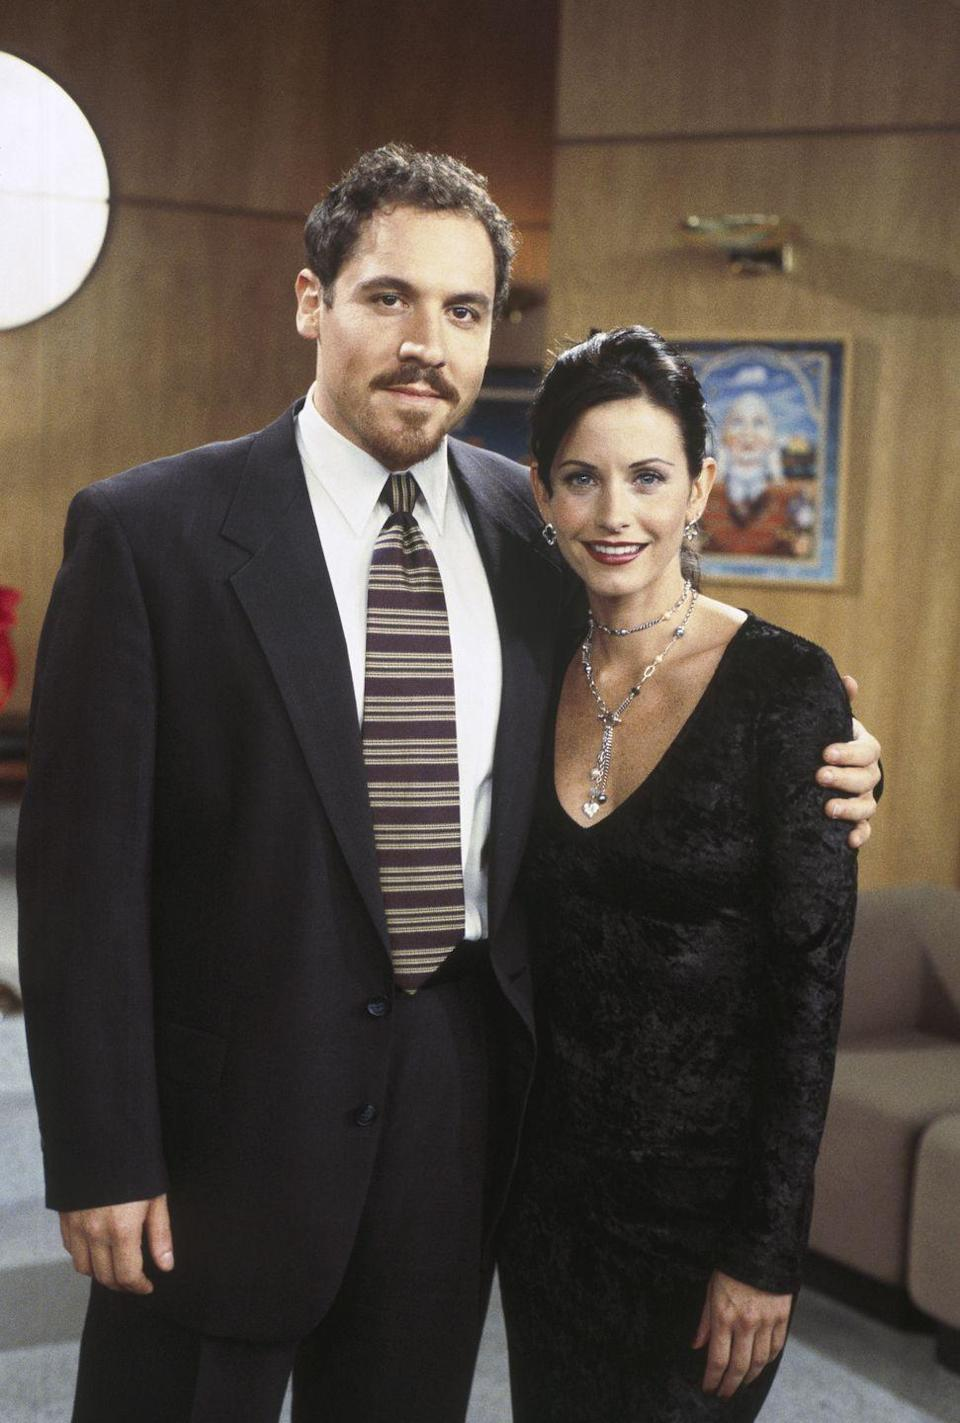 <p>Jon Favreau appeared throughout season 3 as a reoccurring guest star and Monica's love interest, Pete. The actor went on to produce and star in films such as <em>Chef</em>, <em>Iron Man</em>, and <em>The Avengers</em>.</p>